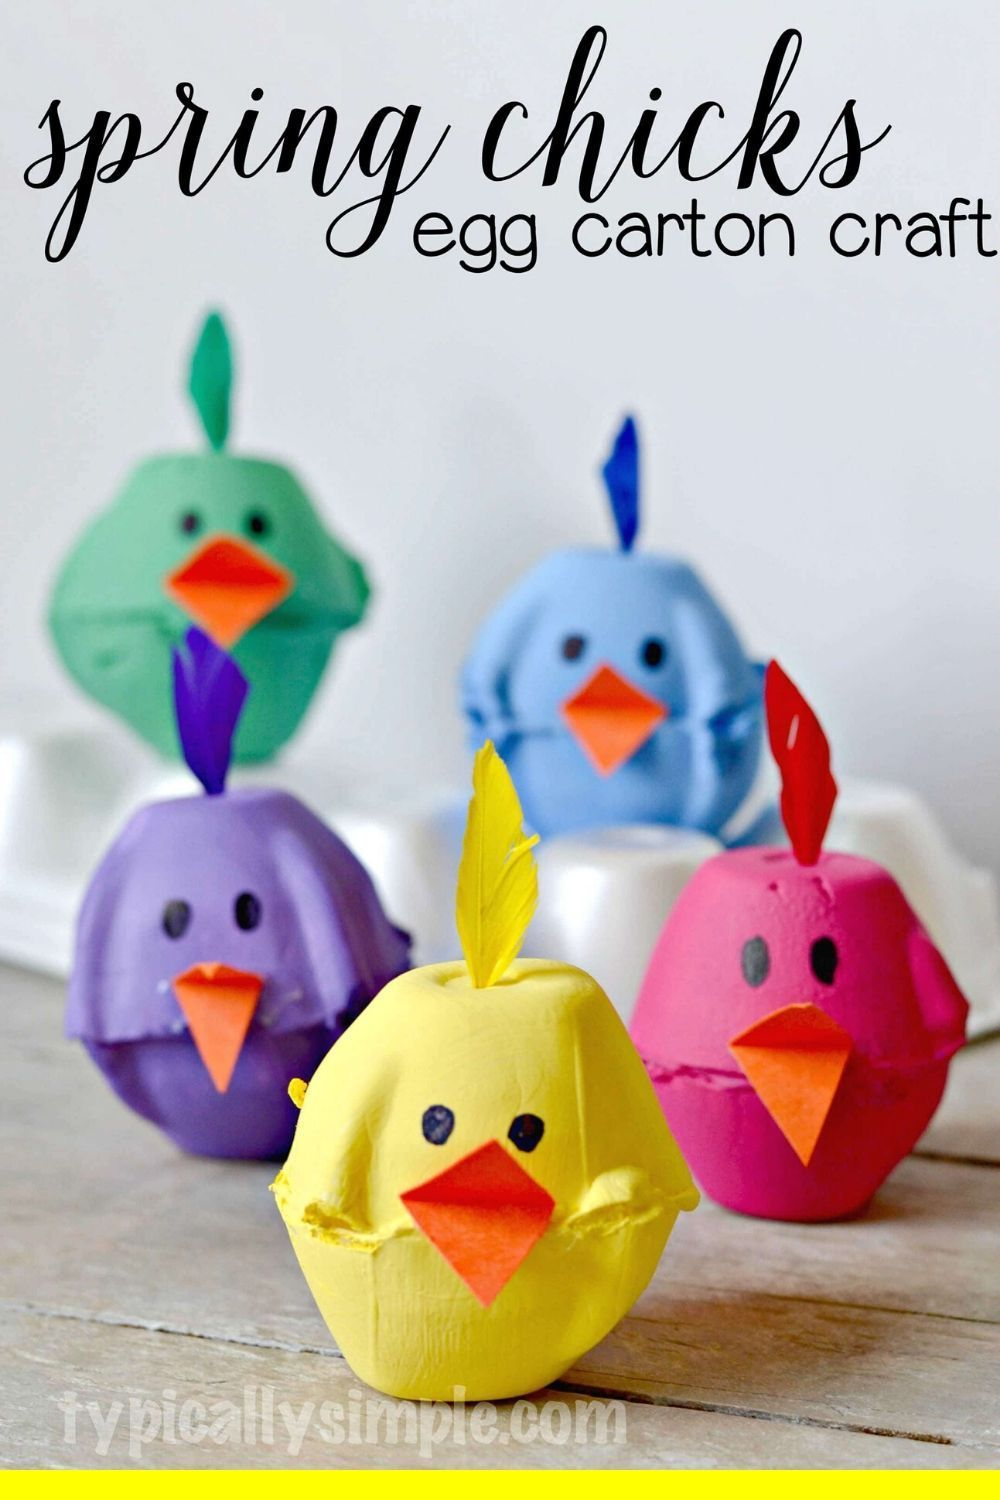 fun easter crafts for kids simple #fun #easter #crafts #fun - fun easter crafts ` fun easter crafts for kids ` fun easter crafts for toddlers ` fun easter crafts for kids diy ` fun easter crafts for adults ` fun easter crafts for kids simple ` fun easter crafts for kids toddlers